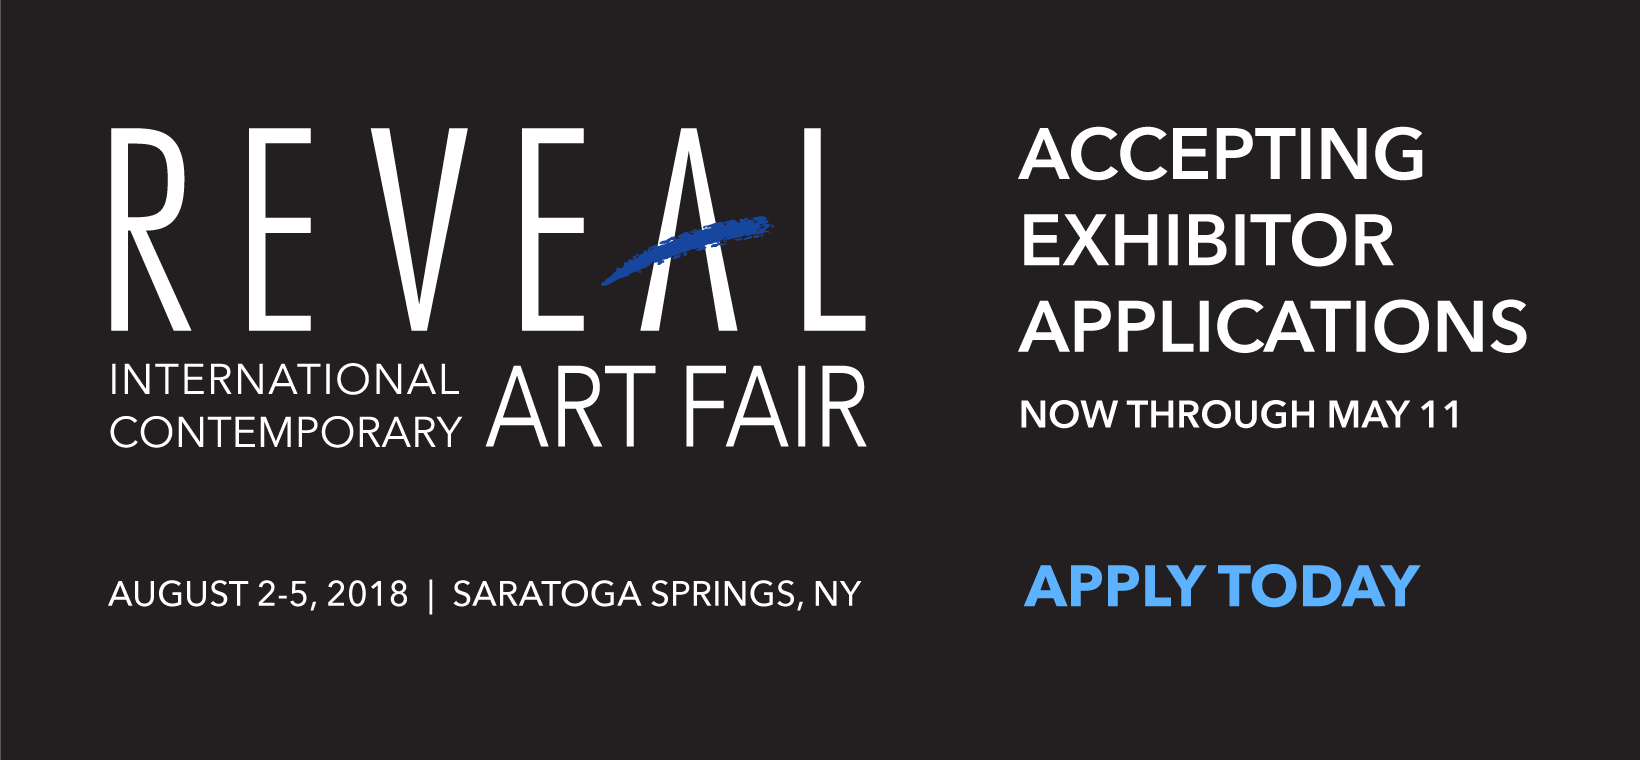 Accepting Exhibitor Applications Thru May 11